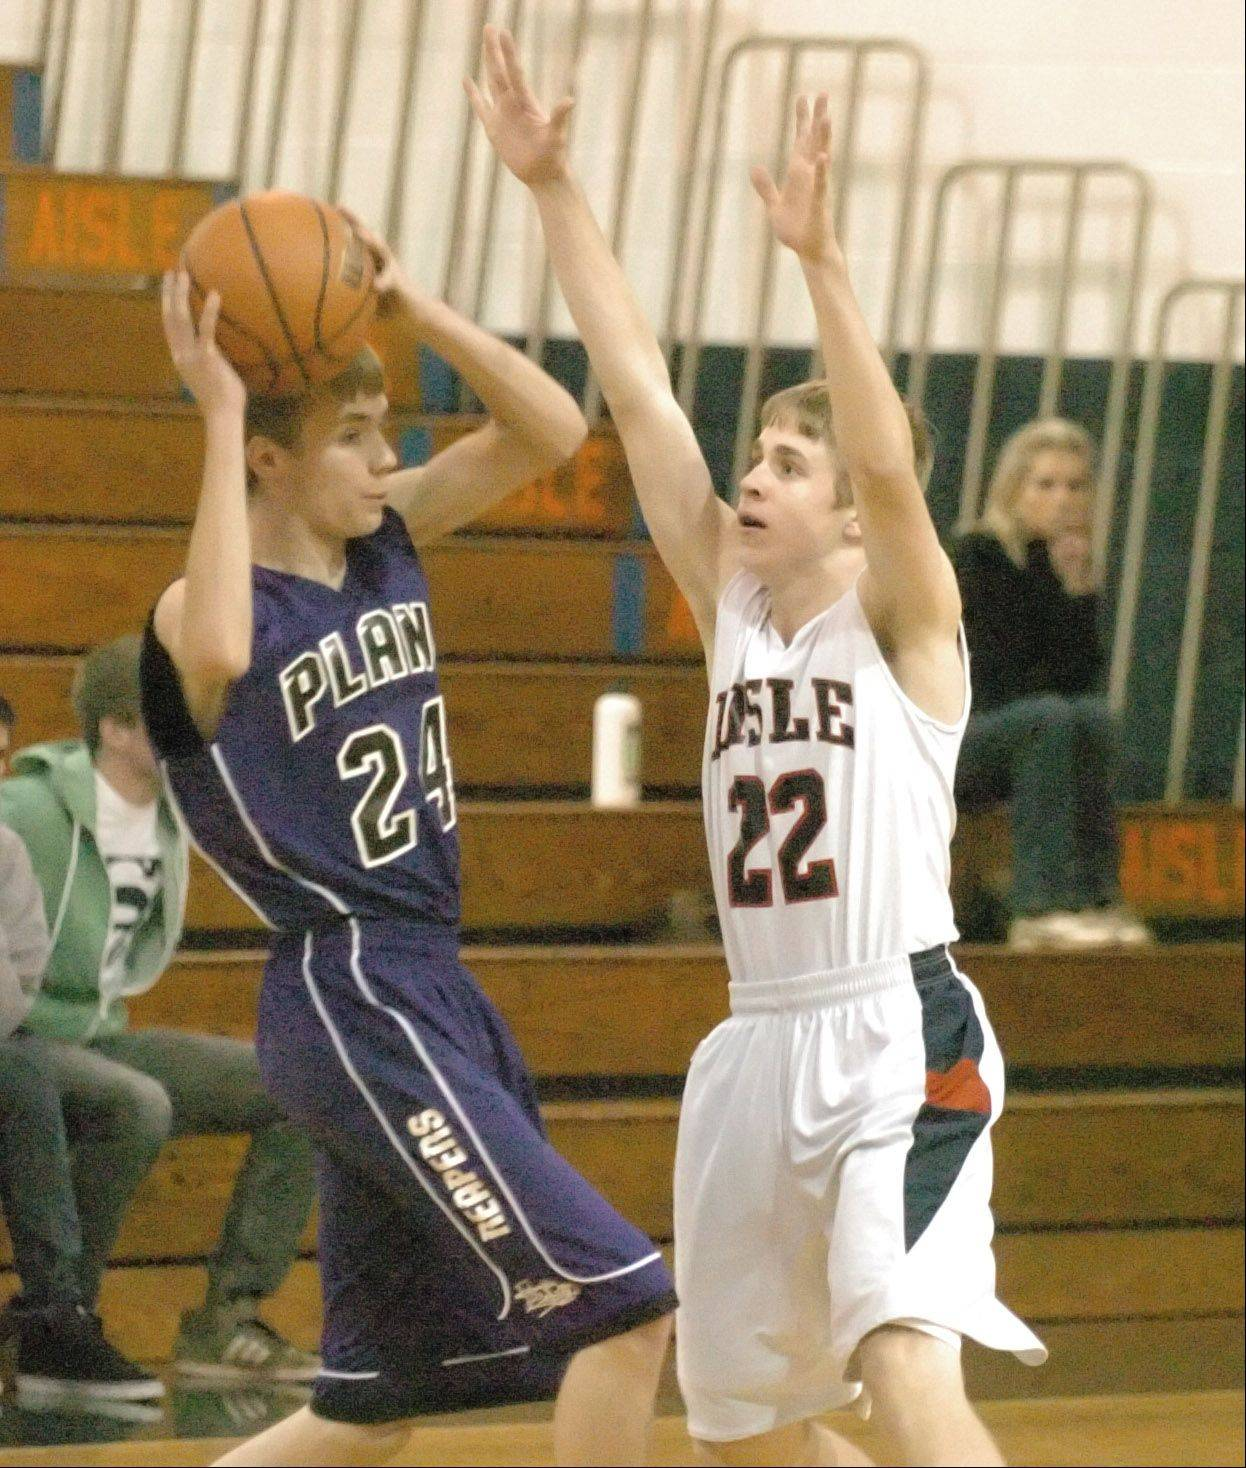 Craig Thom of Plano looks to pass over Connor Bielat of Lisle during the Plano at Lisle boys basketball game Tuesday.